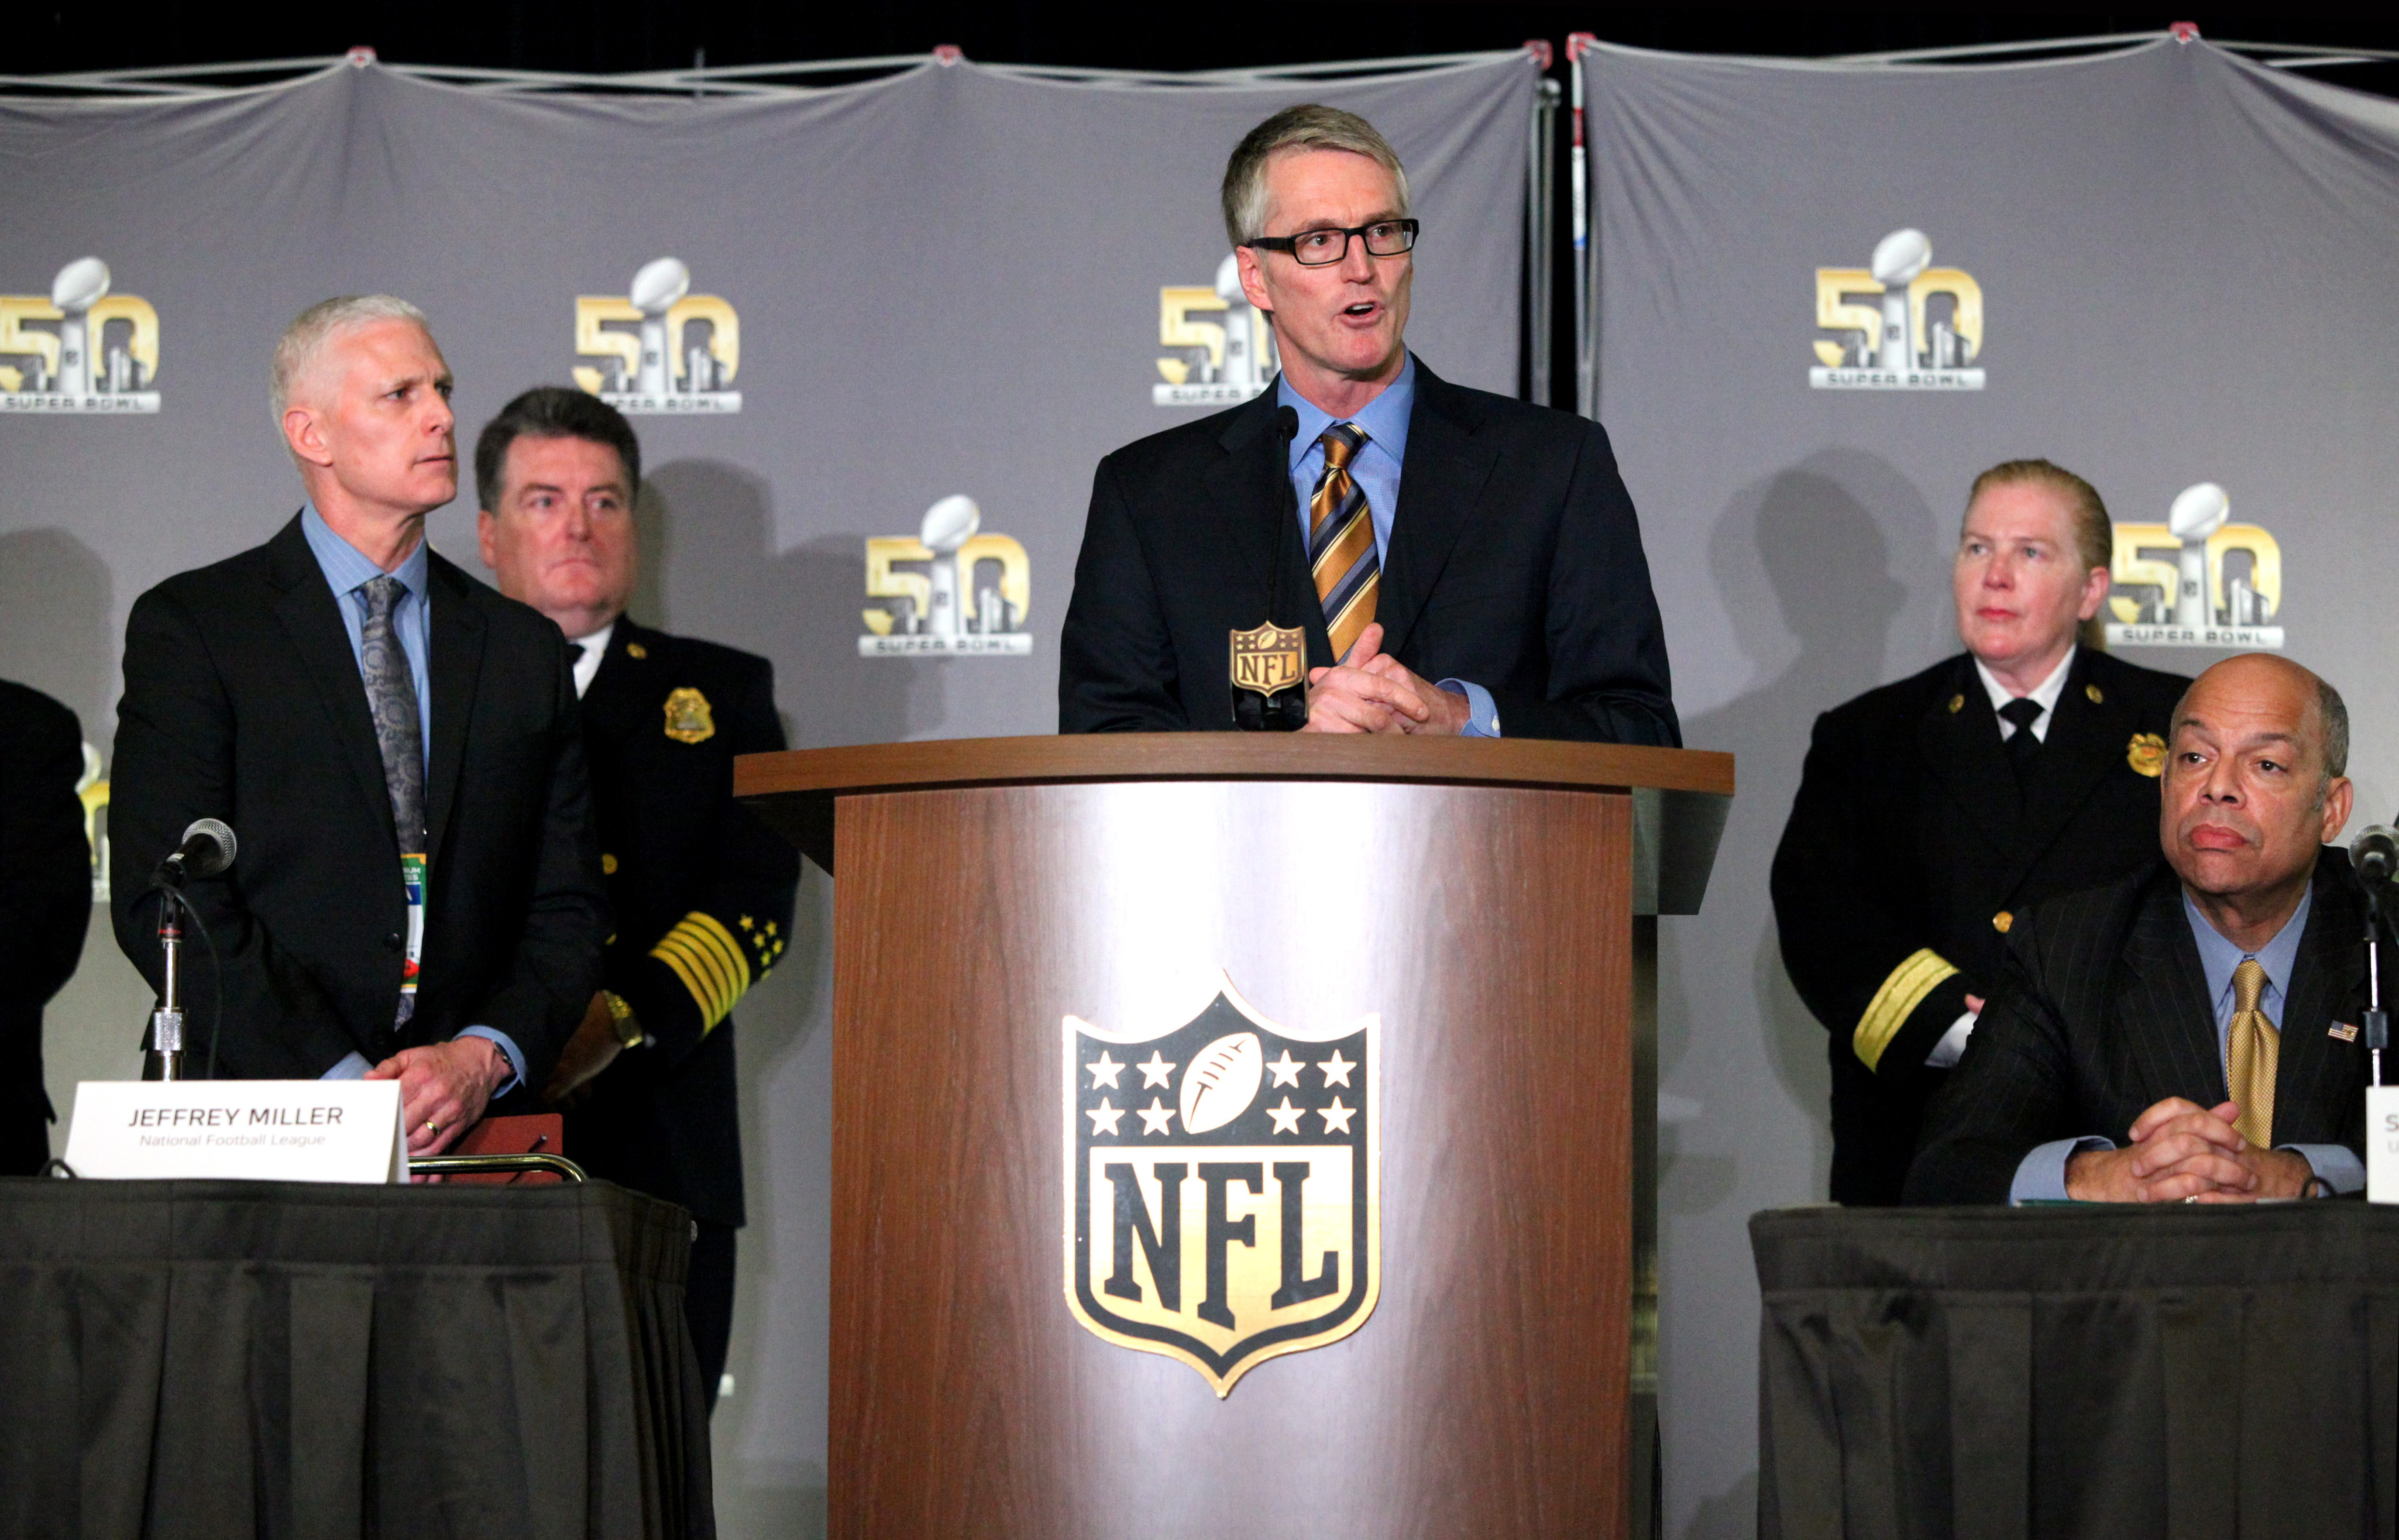 FBI special agent David Johnson addresses the crowd at a press conference on Wednesday. (Ekevara Kitpowsong/Special to S.F. Examiner)